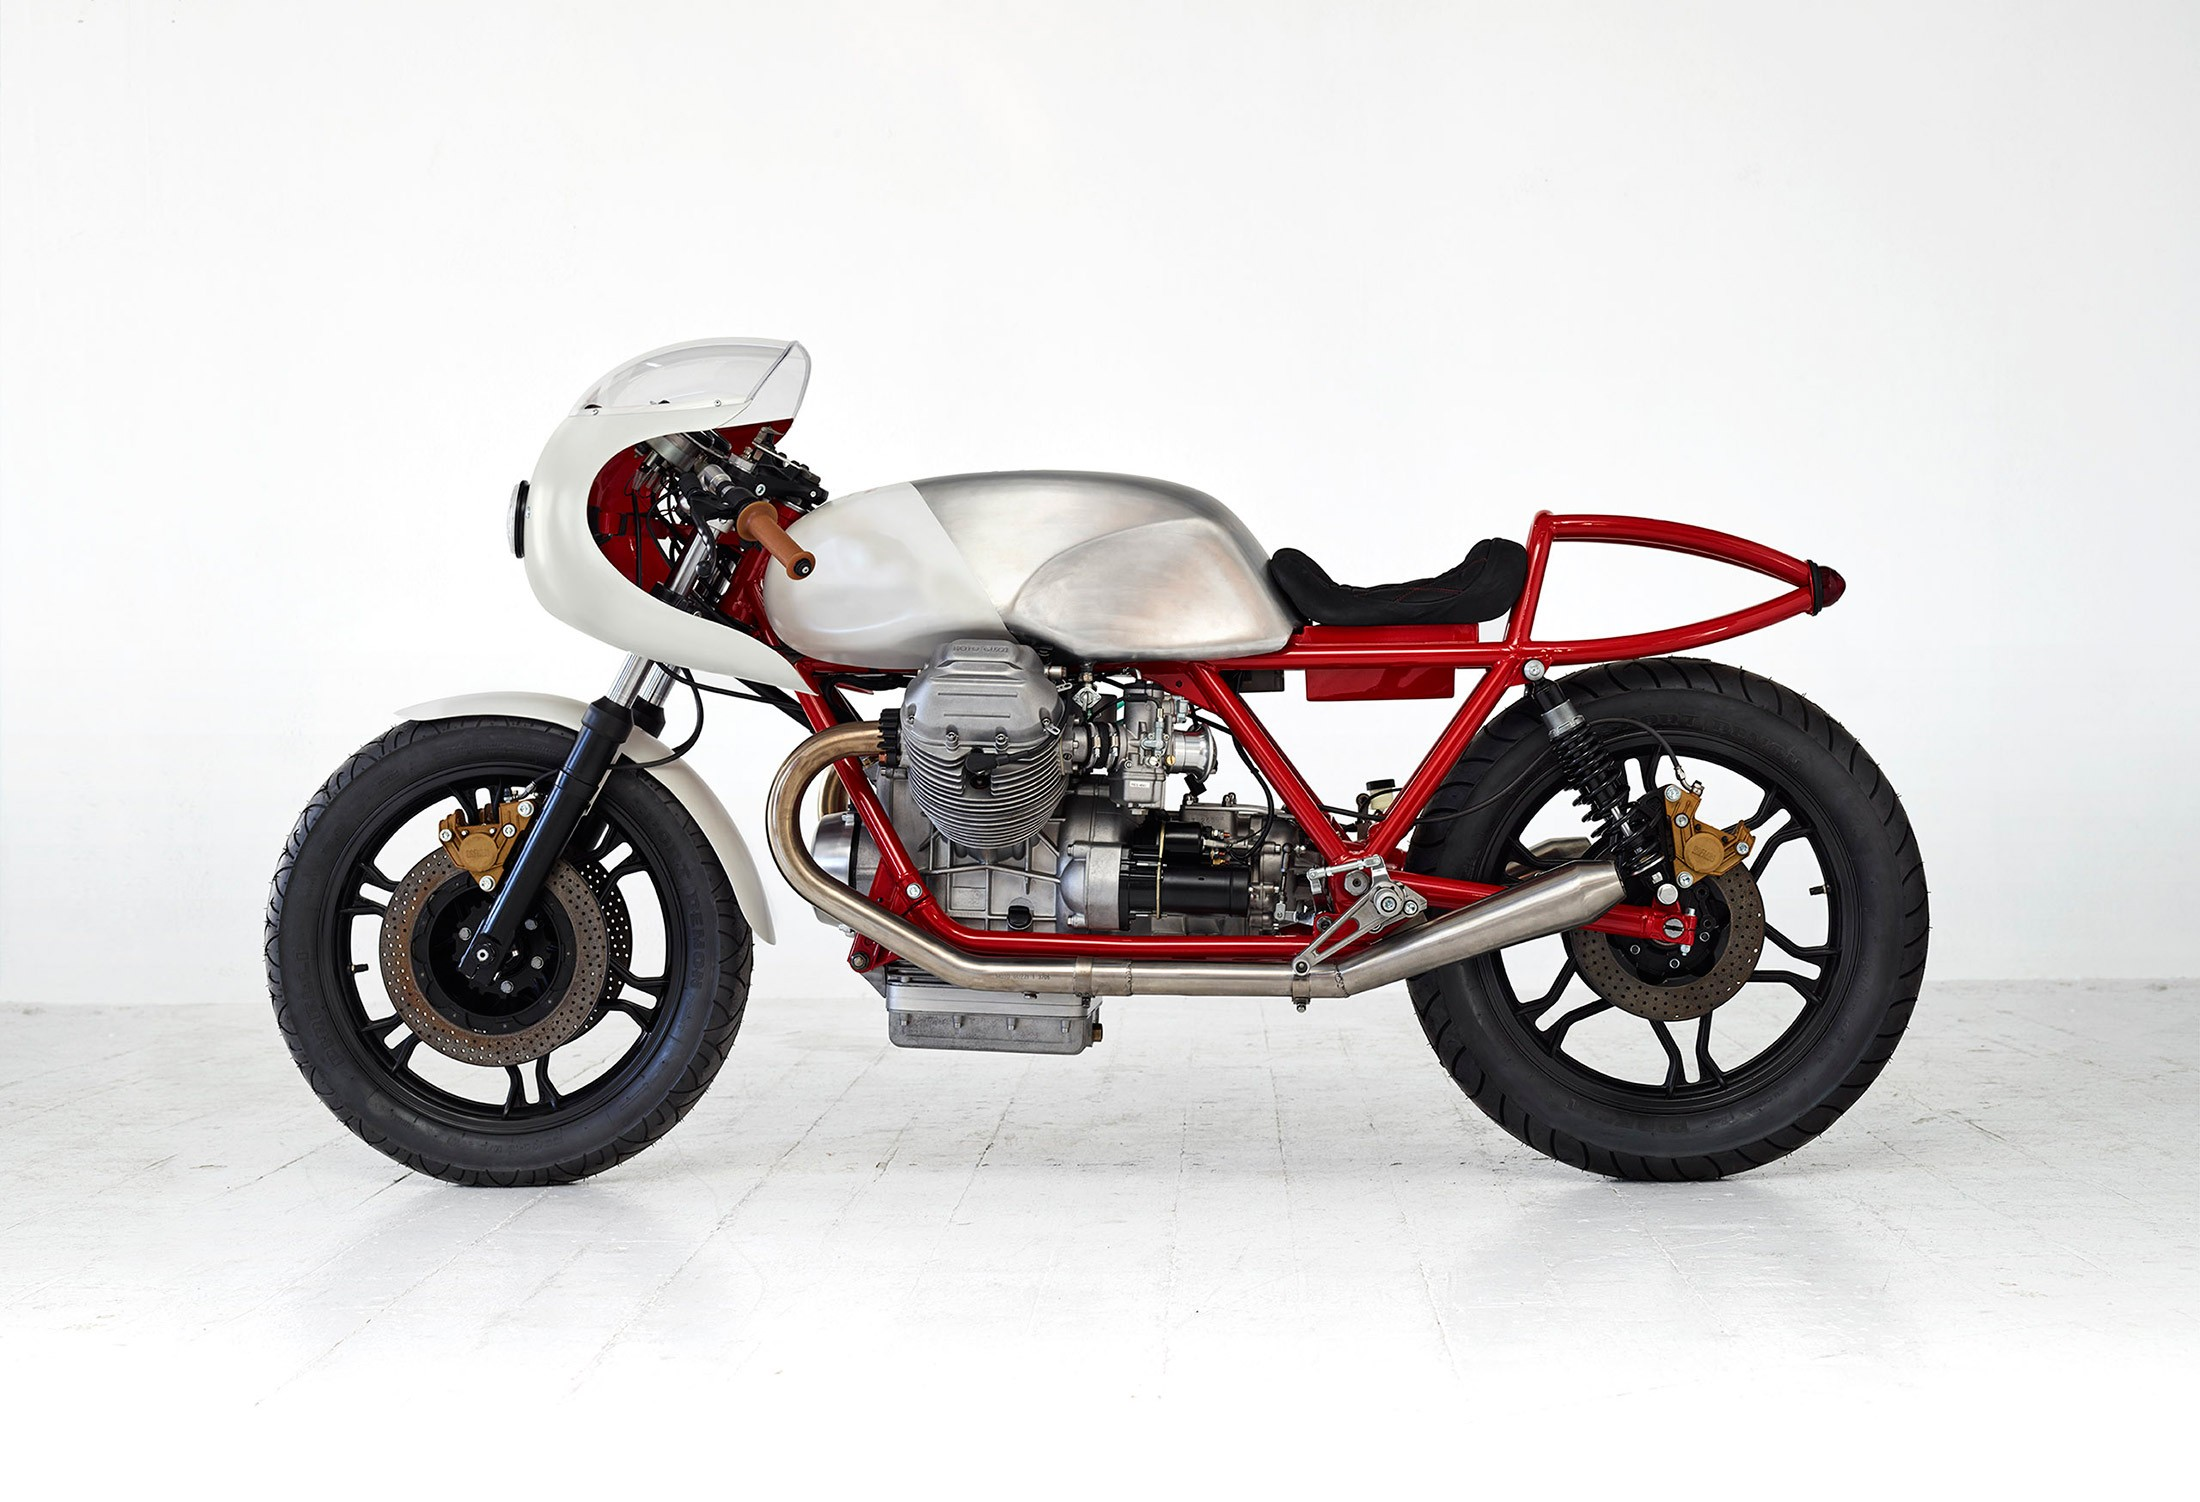 Canapé Modulable Hornet Moto Guzzi Airtail Par Death Machines Of London Journal Du